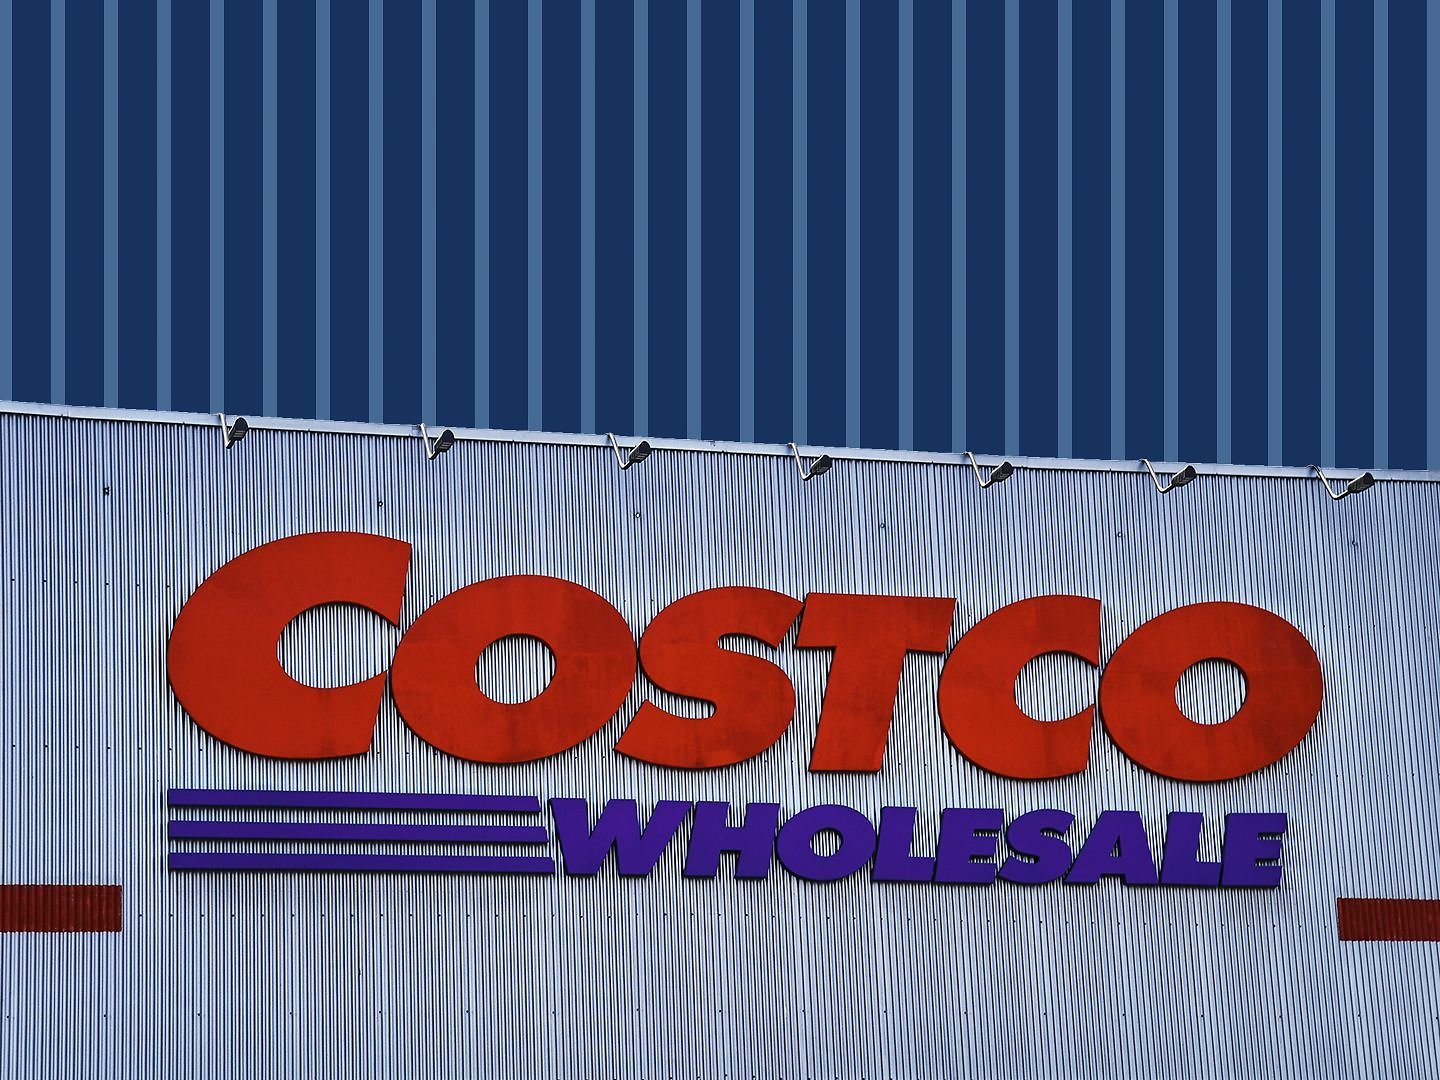 Costco Is Bringing Back a Fan-Favorite Bakery Item That You'll Want to Add to Your Shopping List